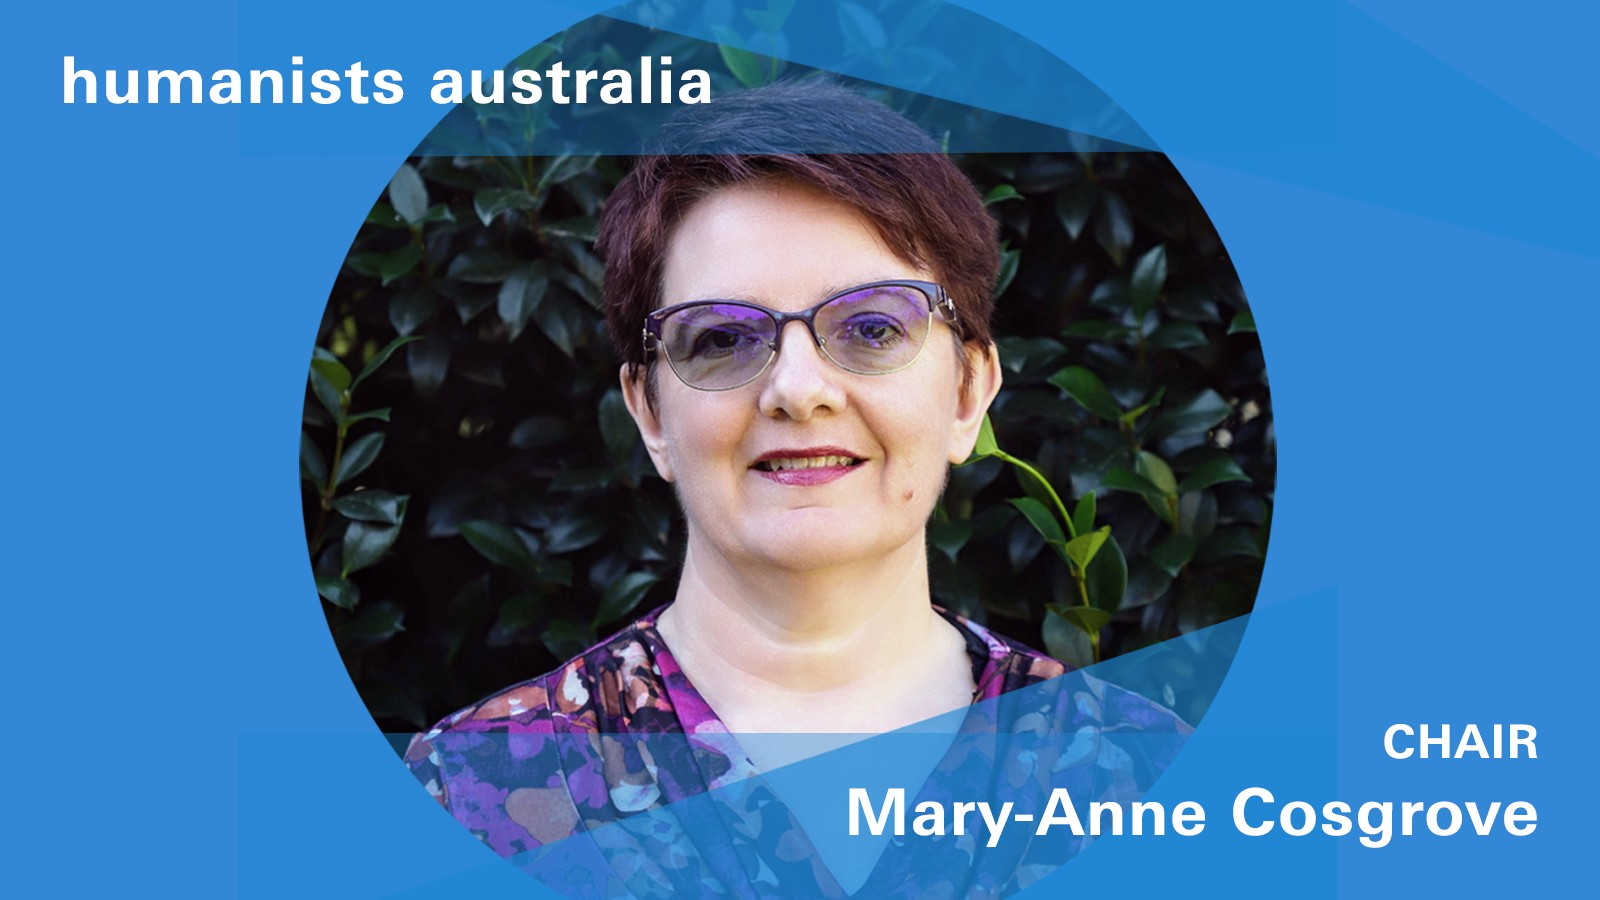 Humanists Australia's Mary-Anne Cosgrove